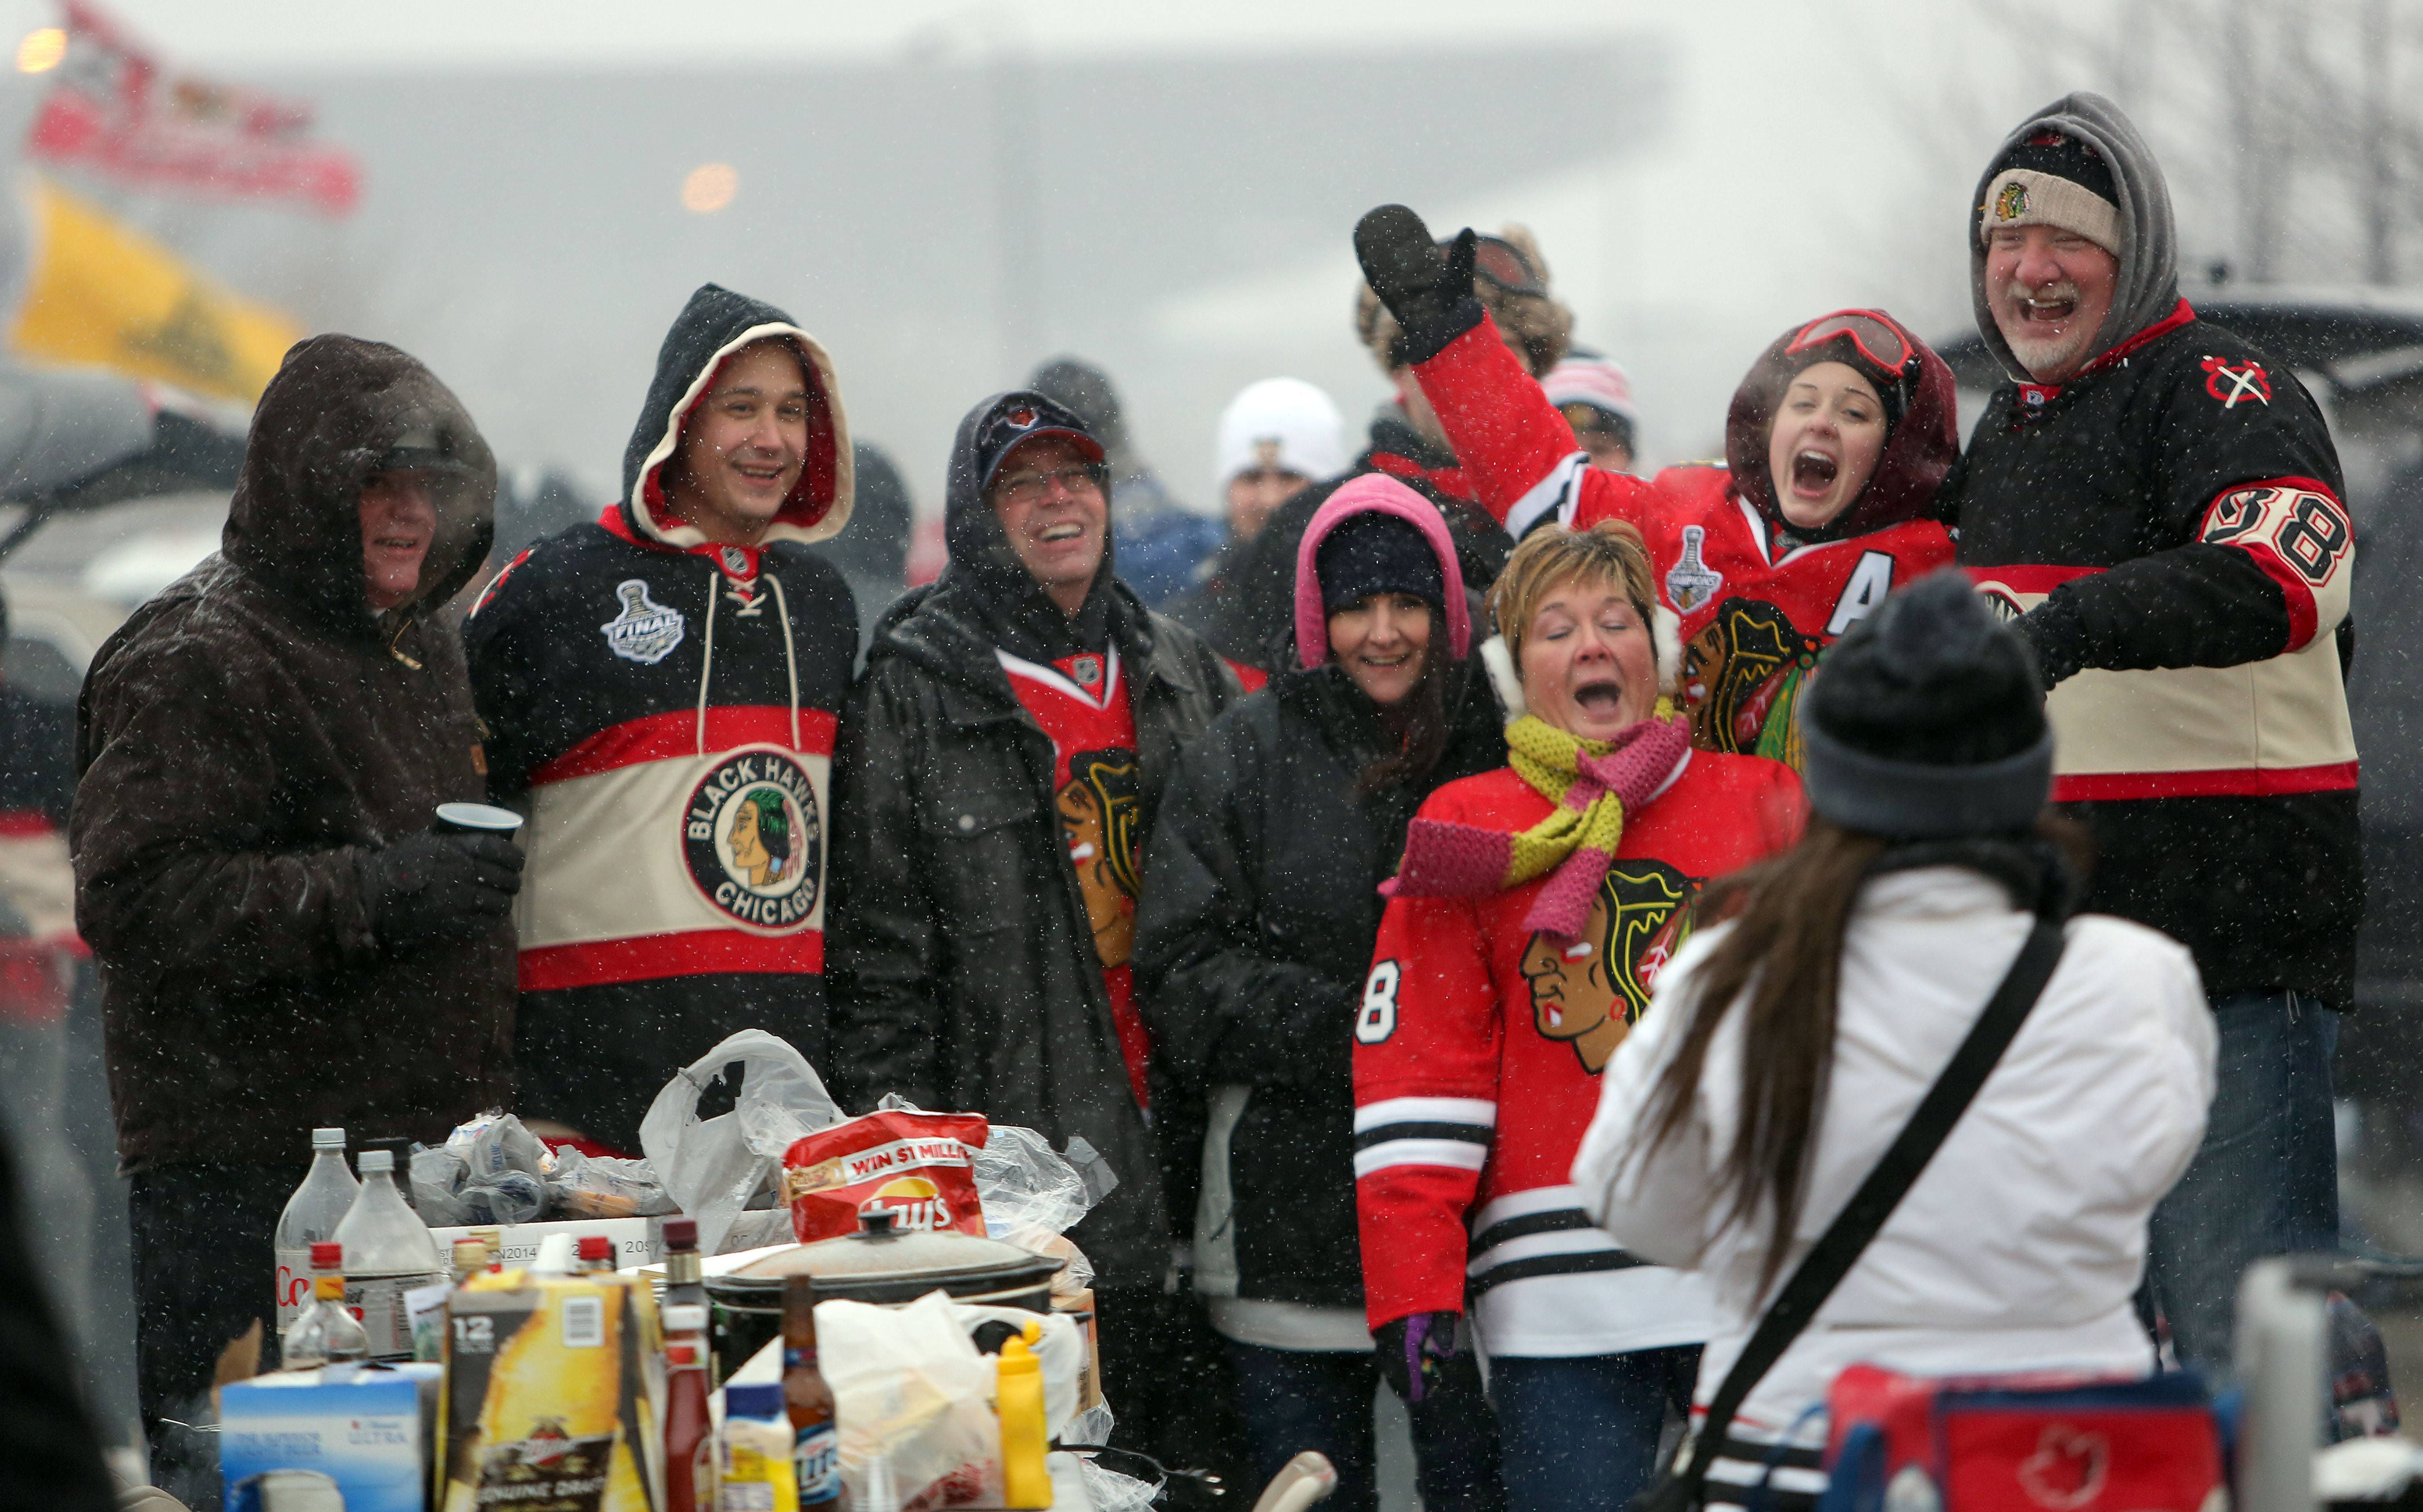 Steve Lundy/slundy@dailyherald.comHawks tailgaters pose for a picture prior to the Blackhawks vs Penguins NHL Stadium Series Saturday at Soldier Field.